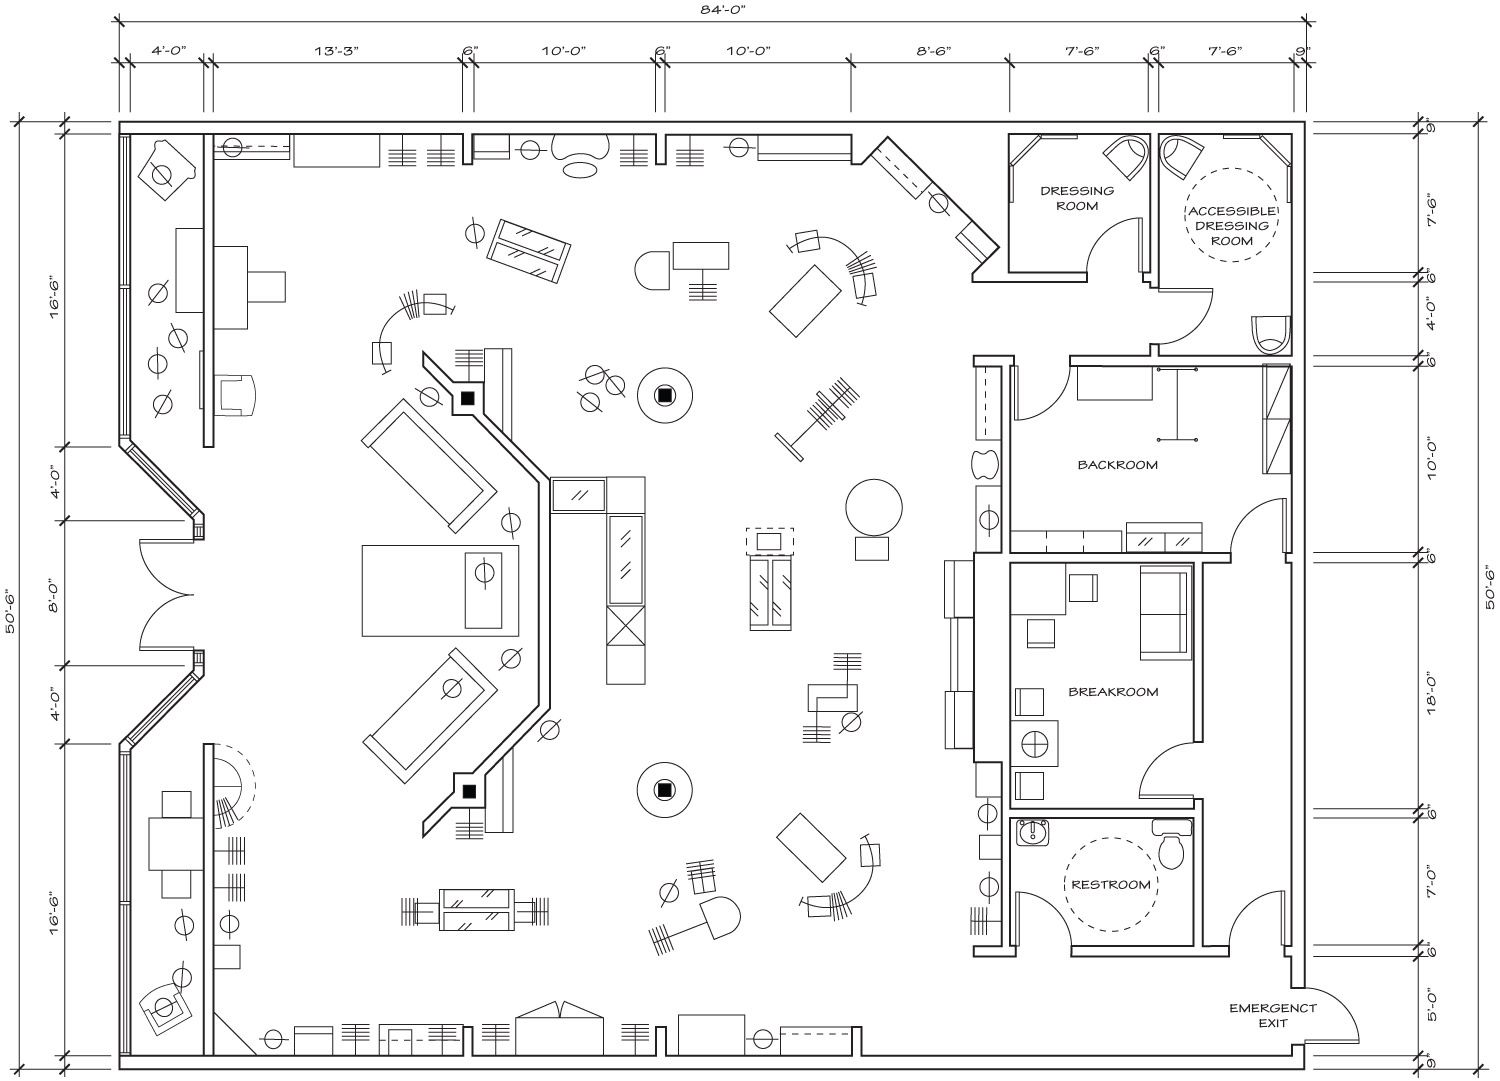 Retail Store Layout Floor Plan Store plan, Retail store